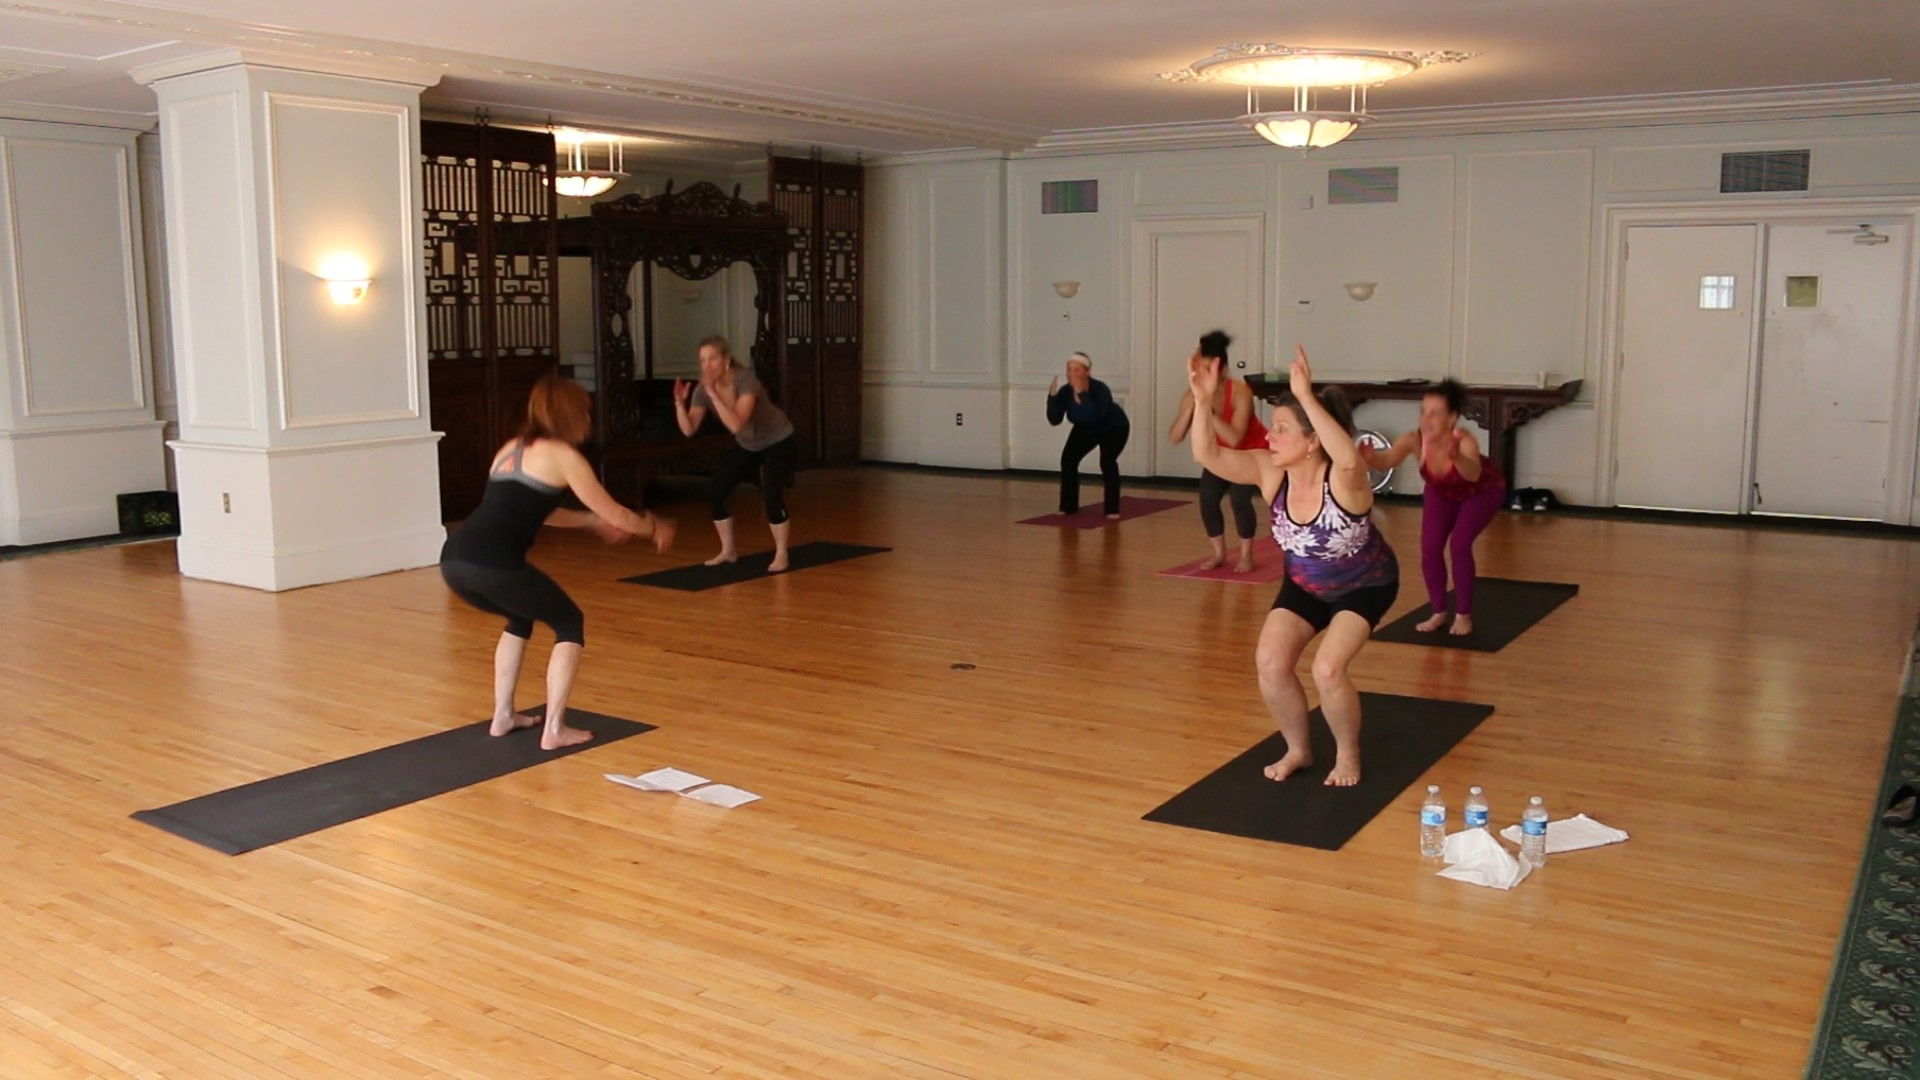 PiYo Pilates Yoga Group Fitness Classes Saint Paul Athletic Club Fitness Workout Minnesota Downtown